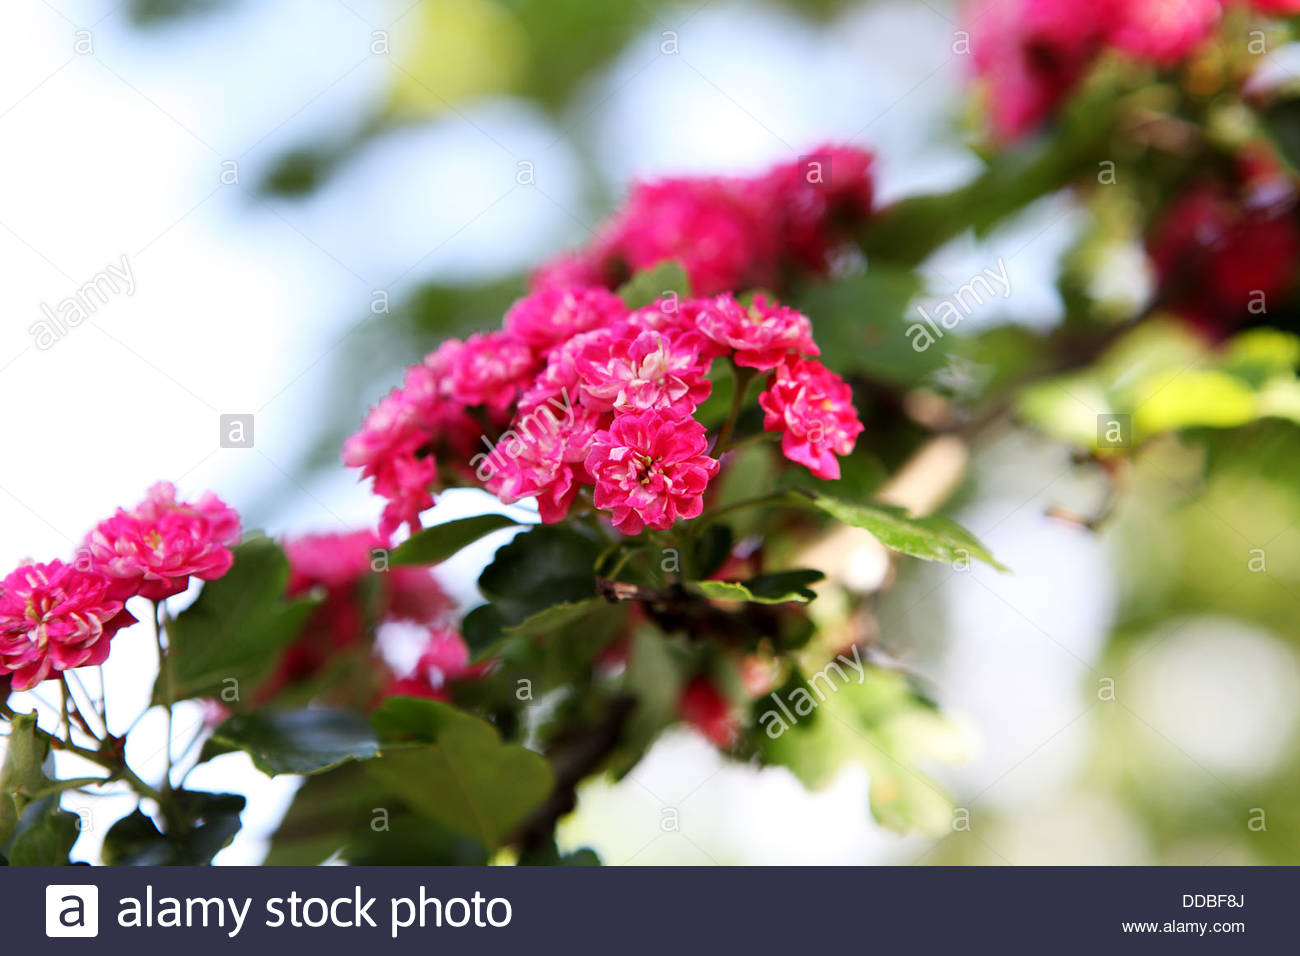 Hawthorn branch with pink blossom - Stock Image